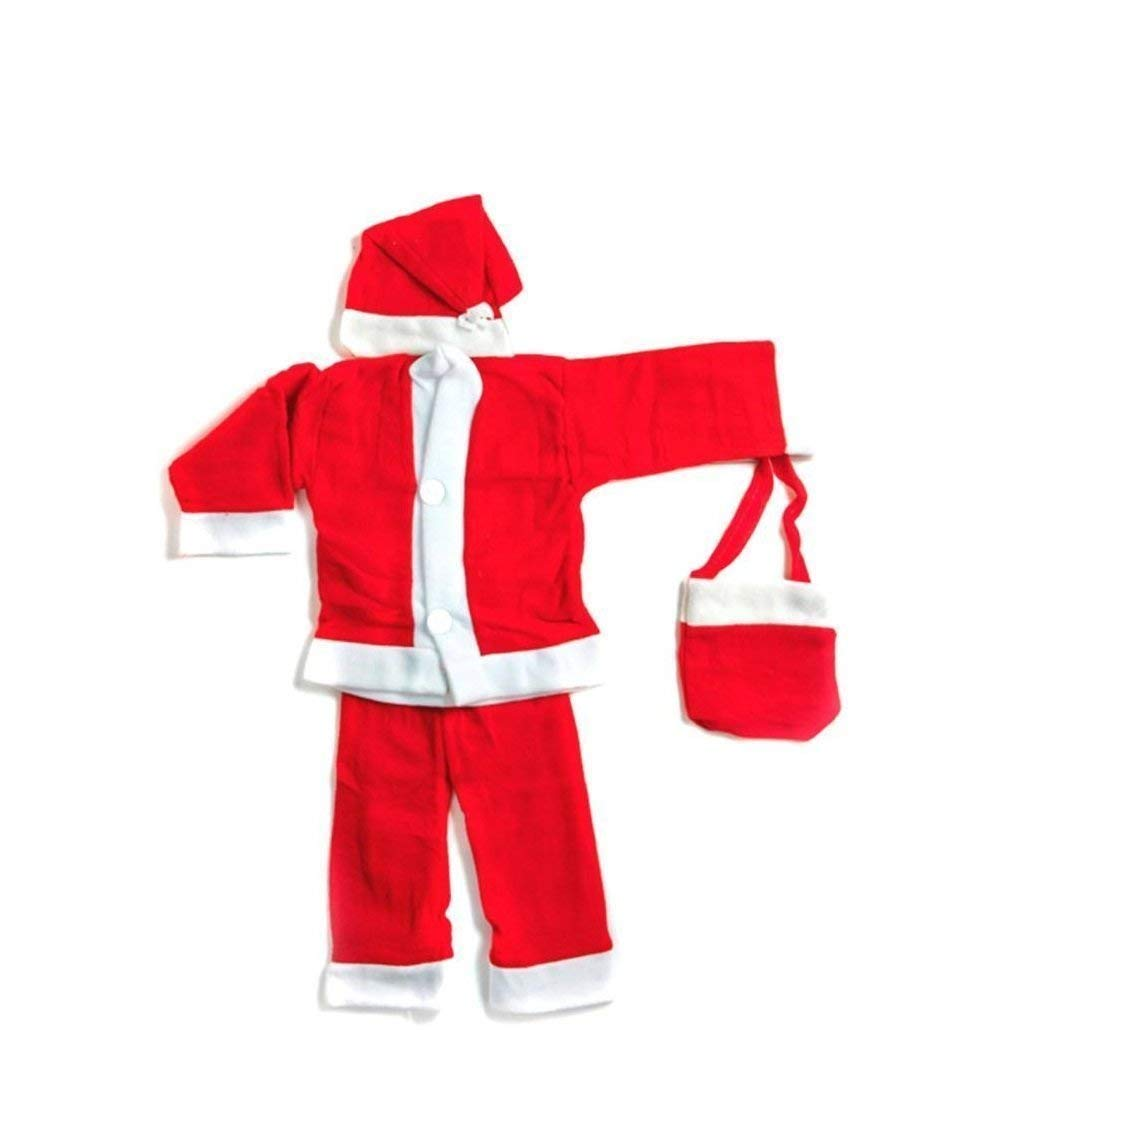 bae84b93a1885 IndusBay Santa Claus Dress Christmas Costume Fancy Dress for Kids (for Age  0 to 6 Months) - Gia Designer